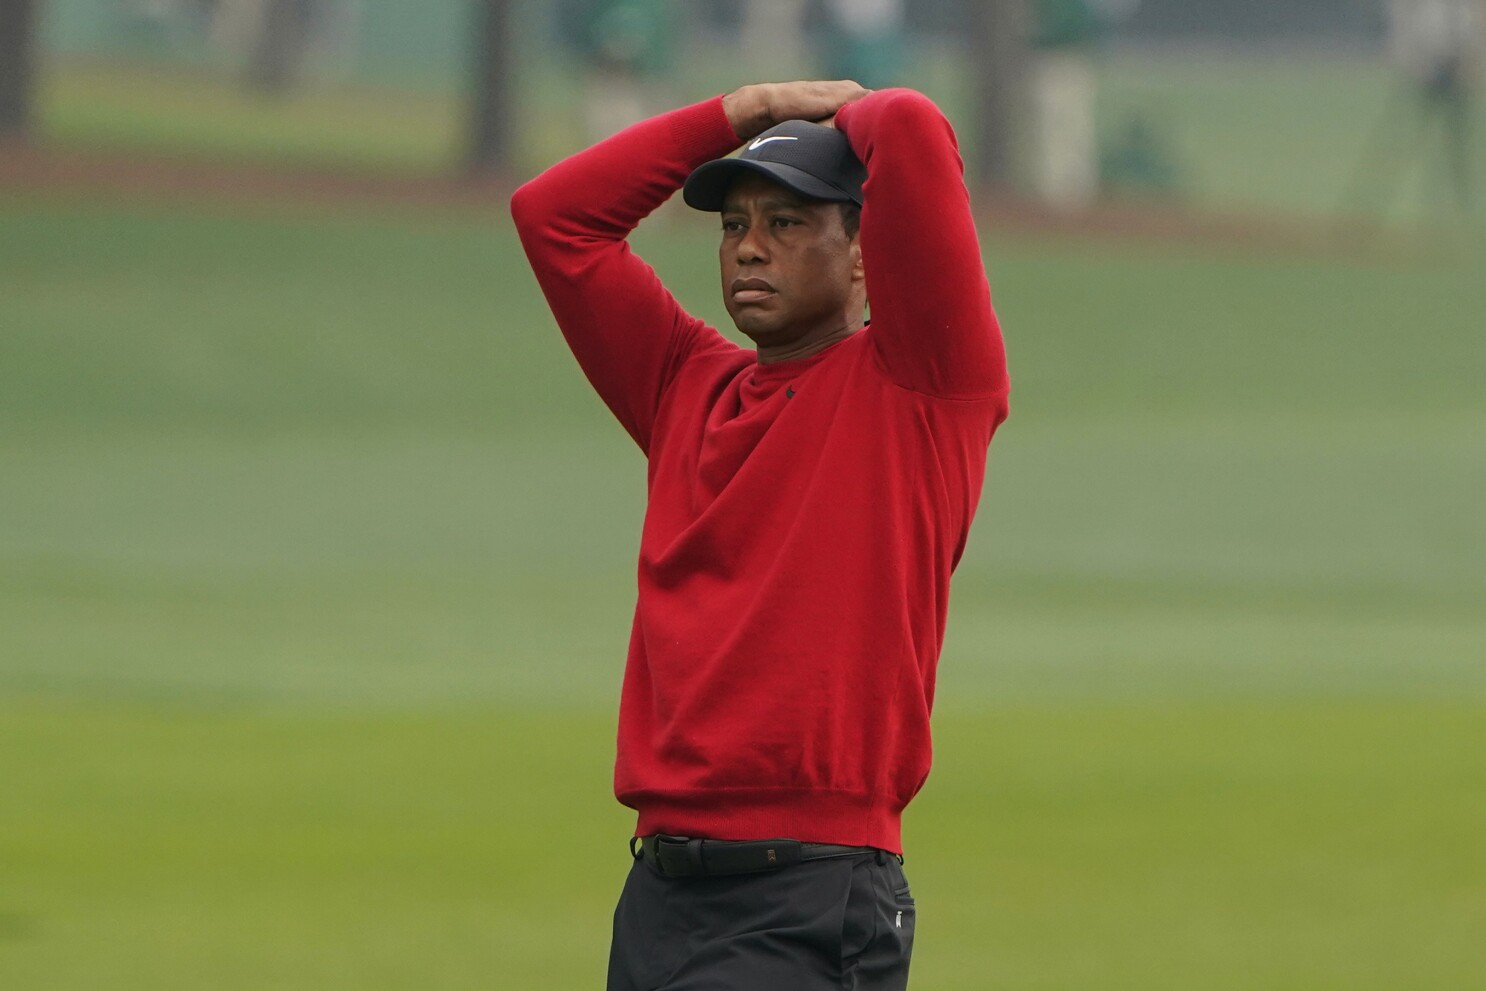 Sources in HBO Tiger Woods documentary feared upsetting him - Los Angeles  Times